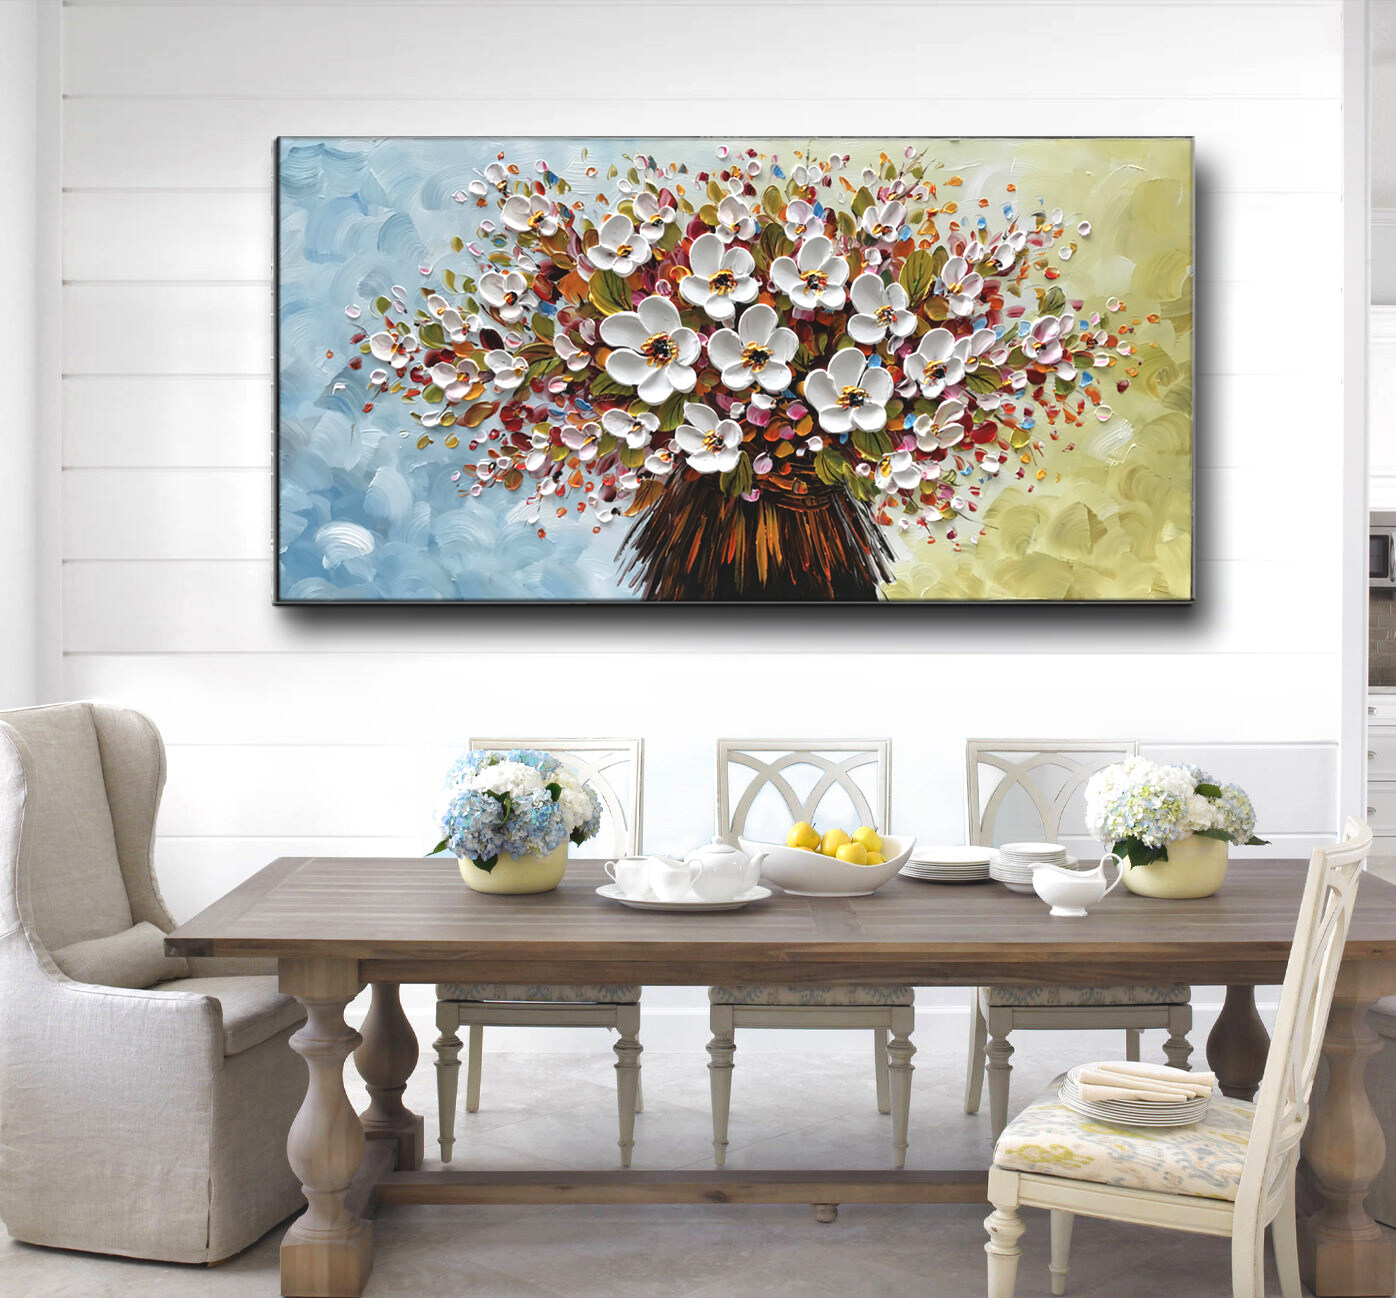 3D Texture Floral Paintings Modern Home Decor Wall Art Handpainted Contemporary